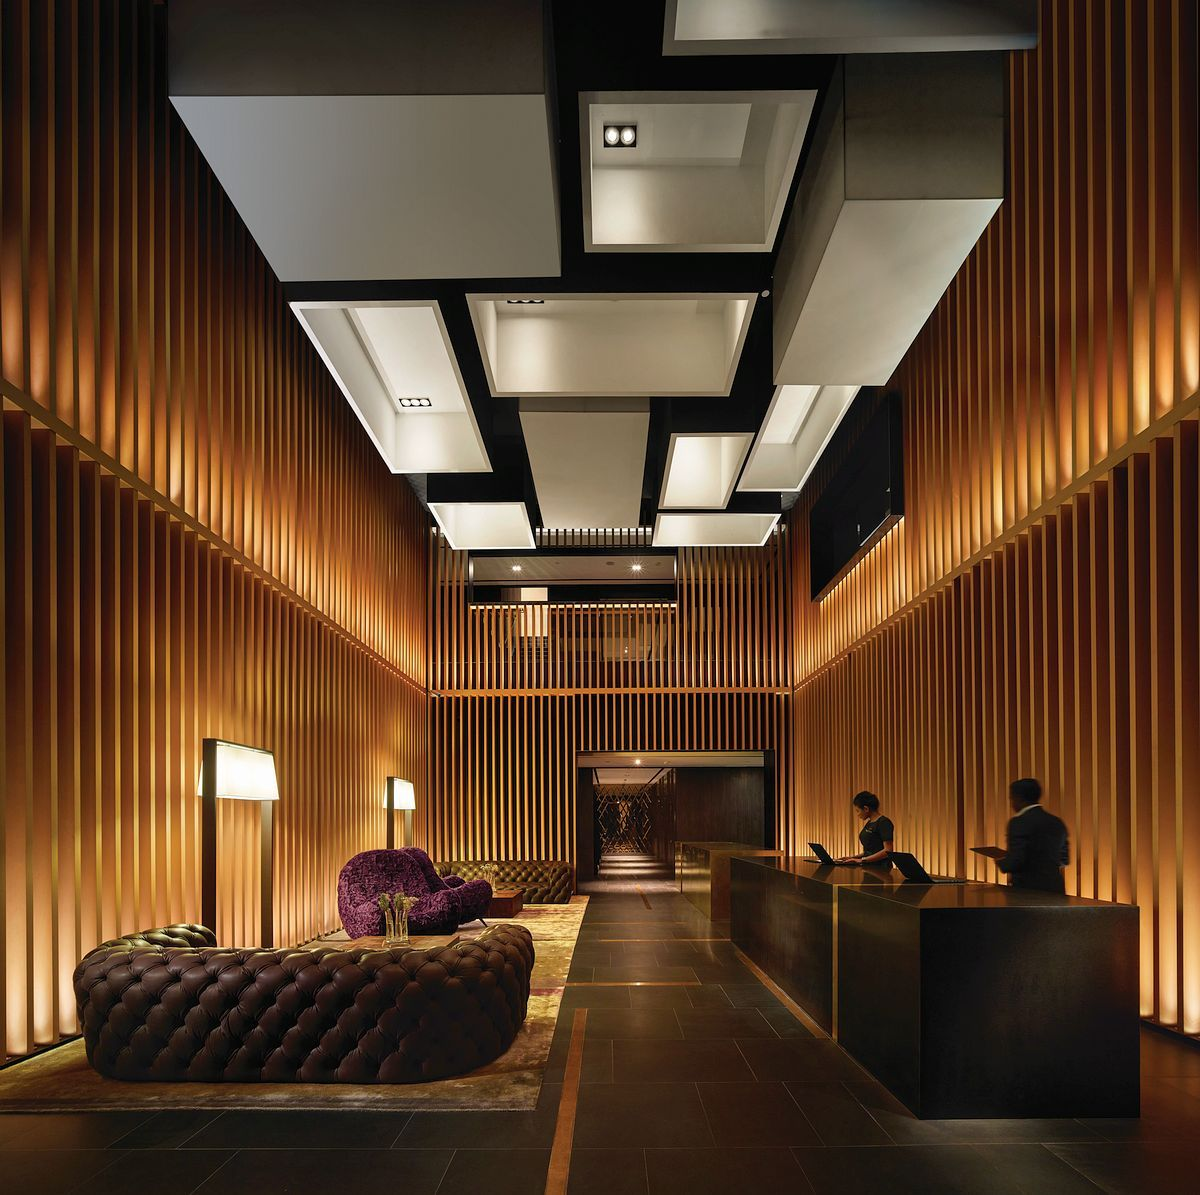 G hotel kelawai malaysia with its exquisite luxury for Design hotel reception